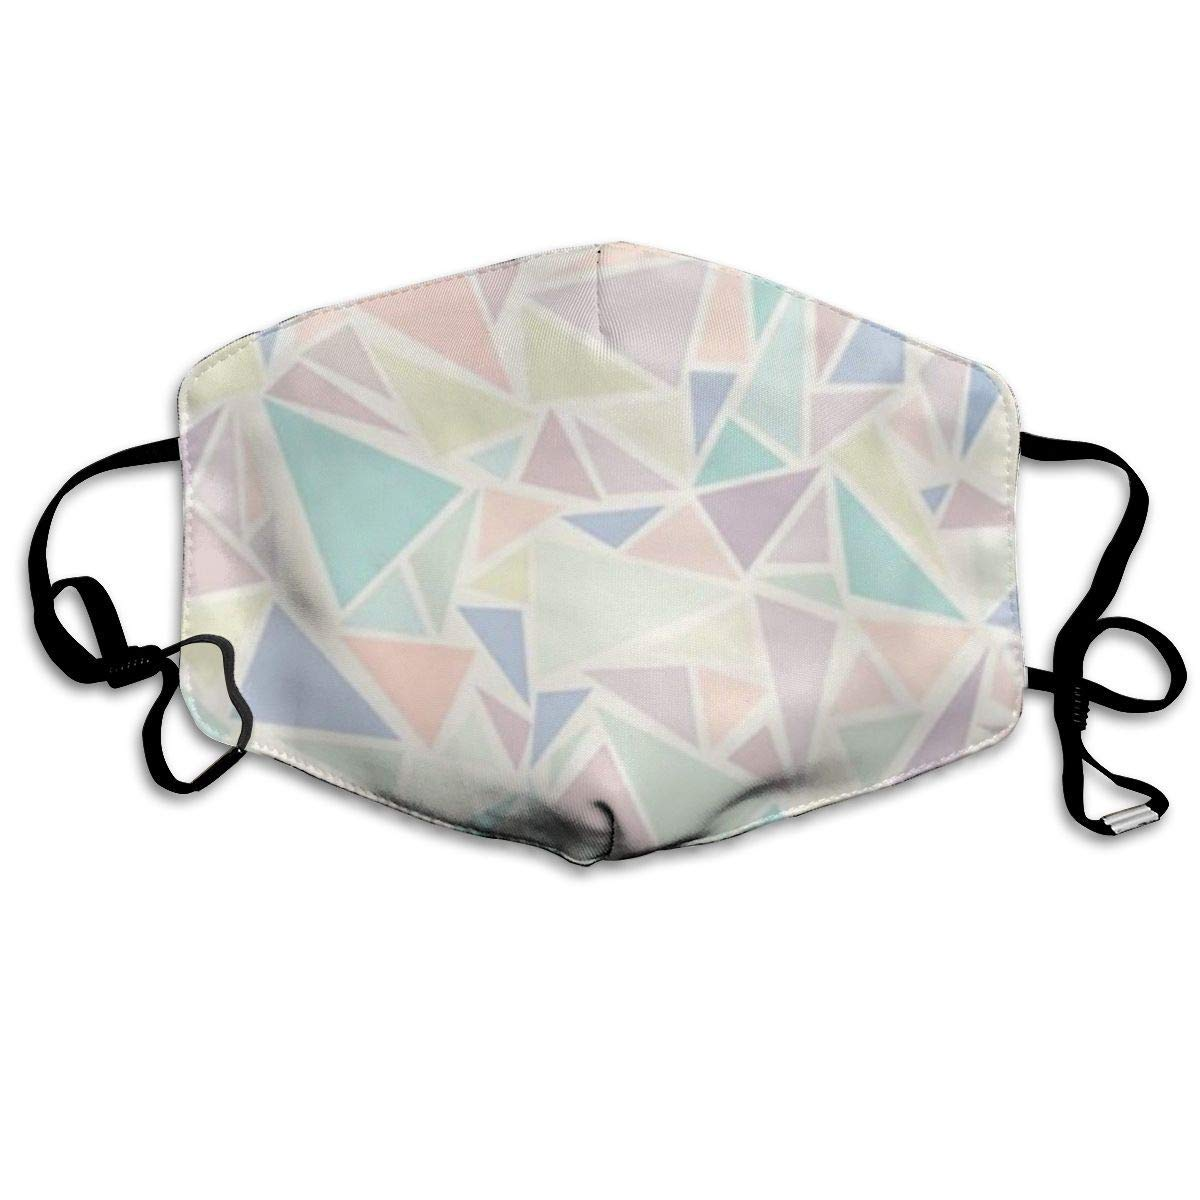 Bdwuhs Mascarillas Bucales,Boca Máscara Dust Mask for Women and Men Pink Triangle Printed Foldable Mask Face Mask Anti-Dust Mouth Mask